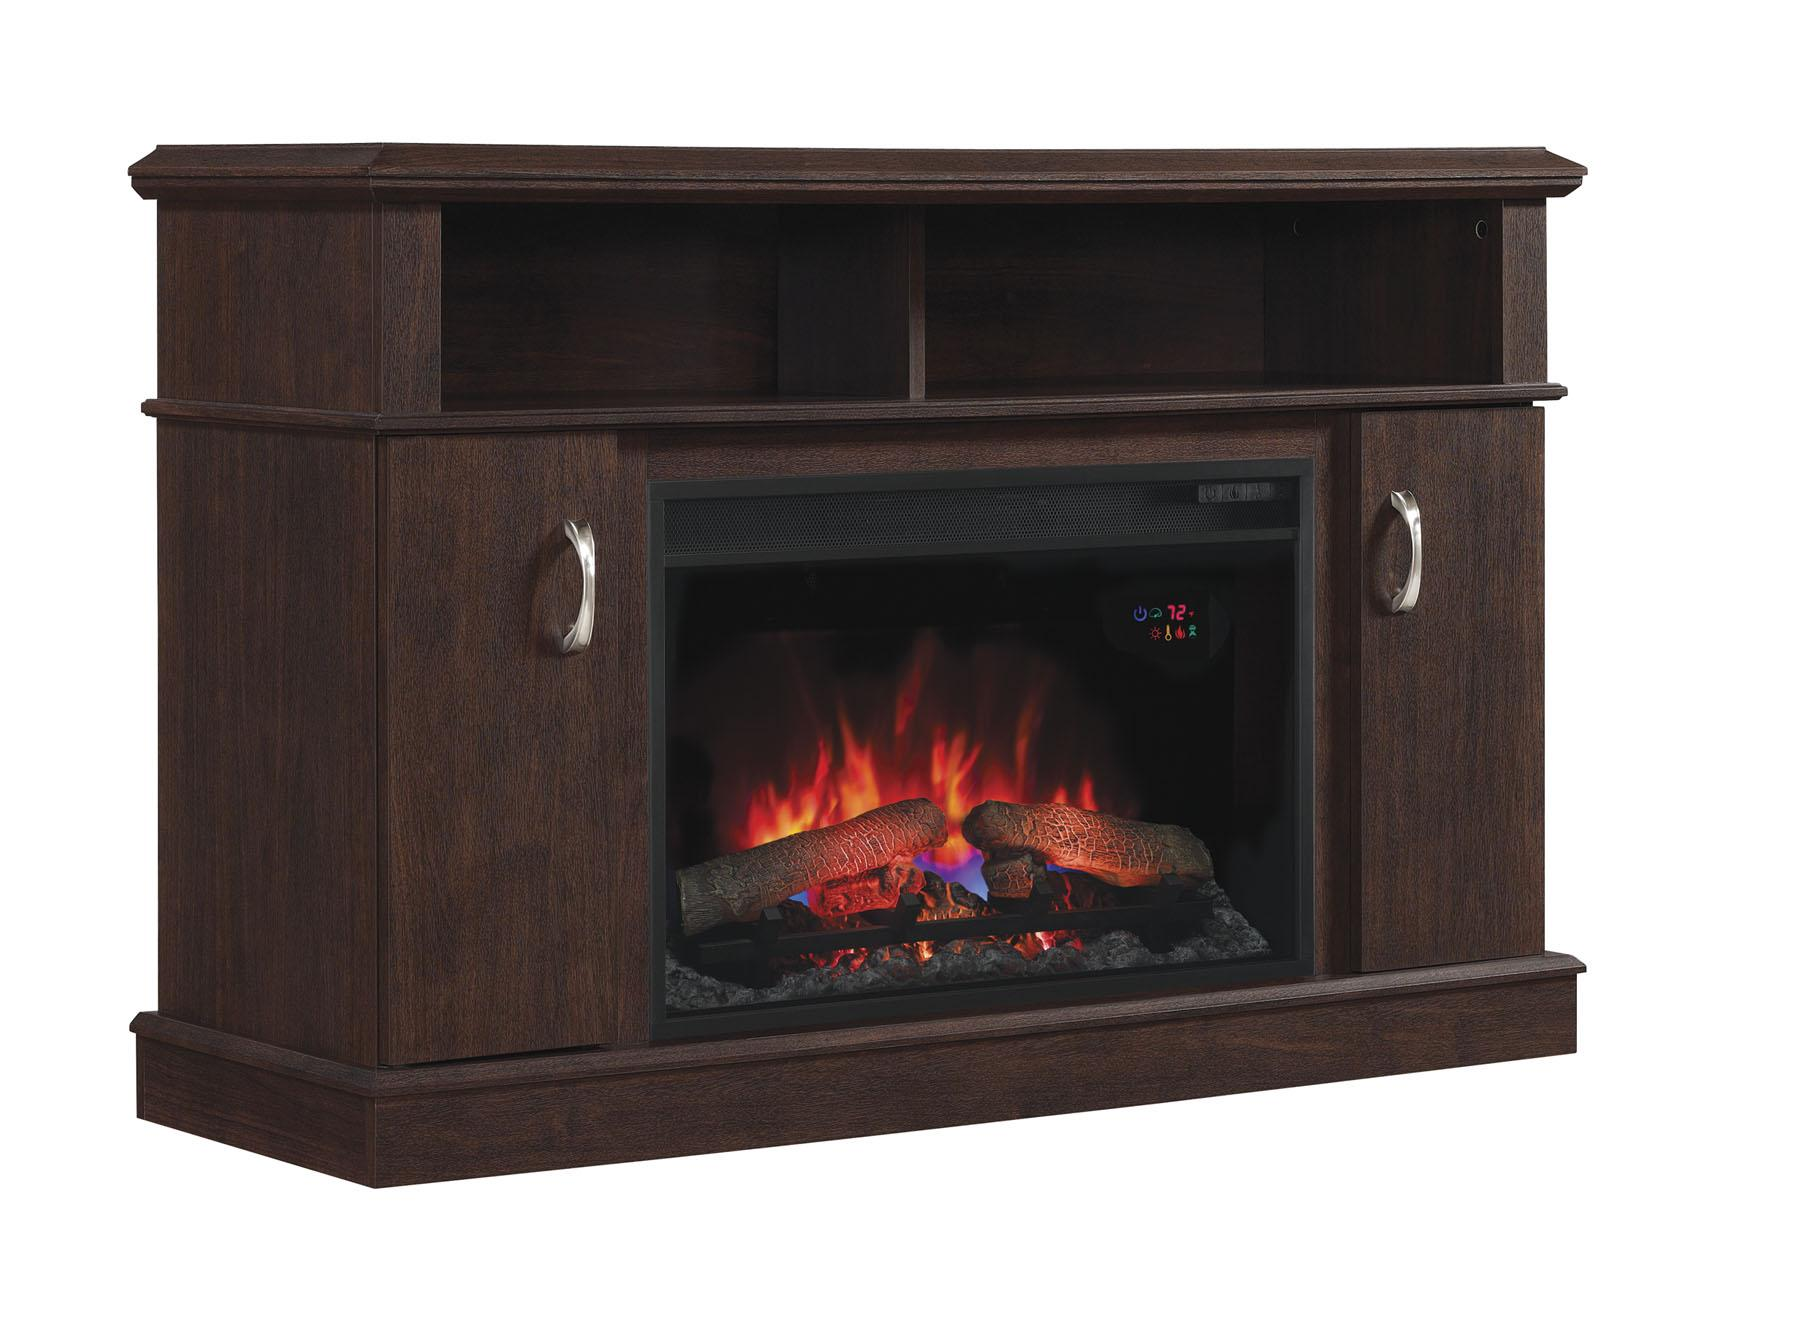 Amazon.com - Classic Flame 26MM5516-PC72 Dwell Fireplace